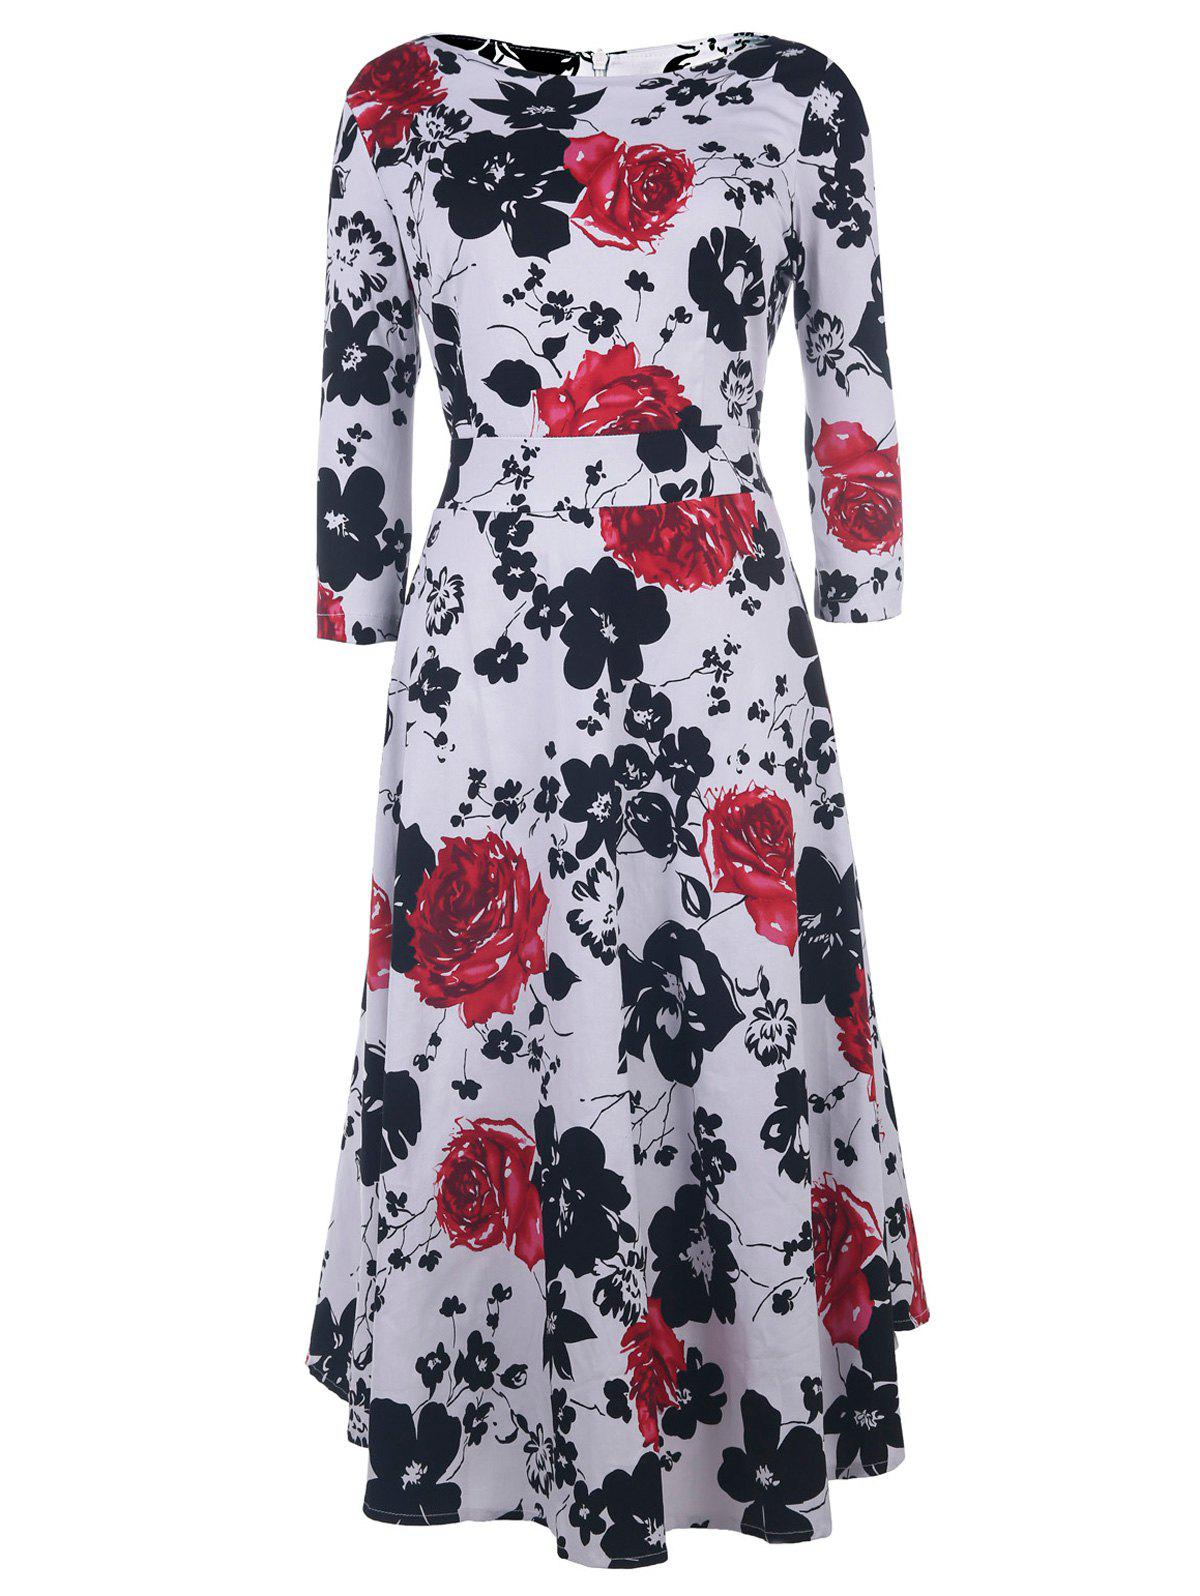 Vintage Style 1/2 Sleeve Round Neck Floral Print Women's Dress - RED S